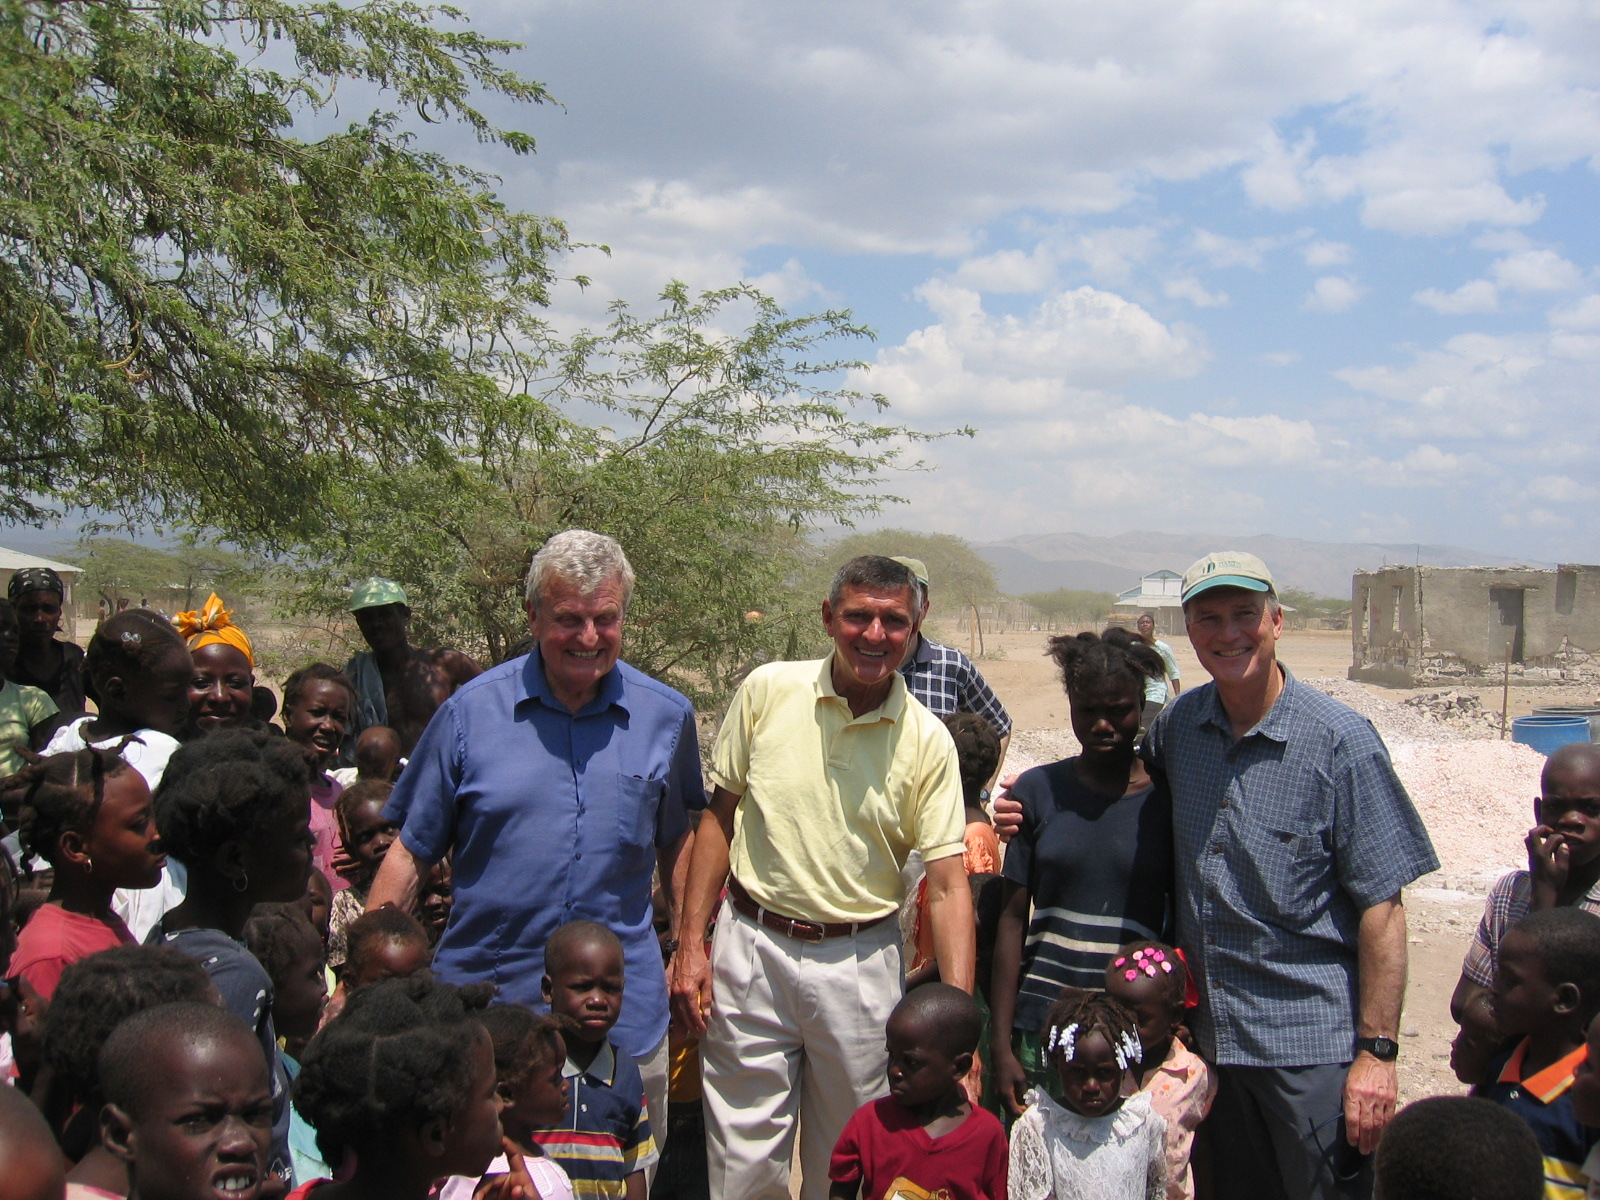 l to r: Paul Sigmund with fellow HT trustees, Tom Gilligan and John Clarke visiting our school in Ti Desdunnes Haiti.